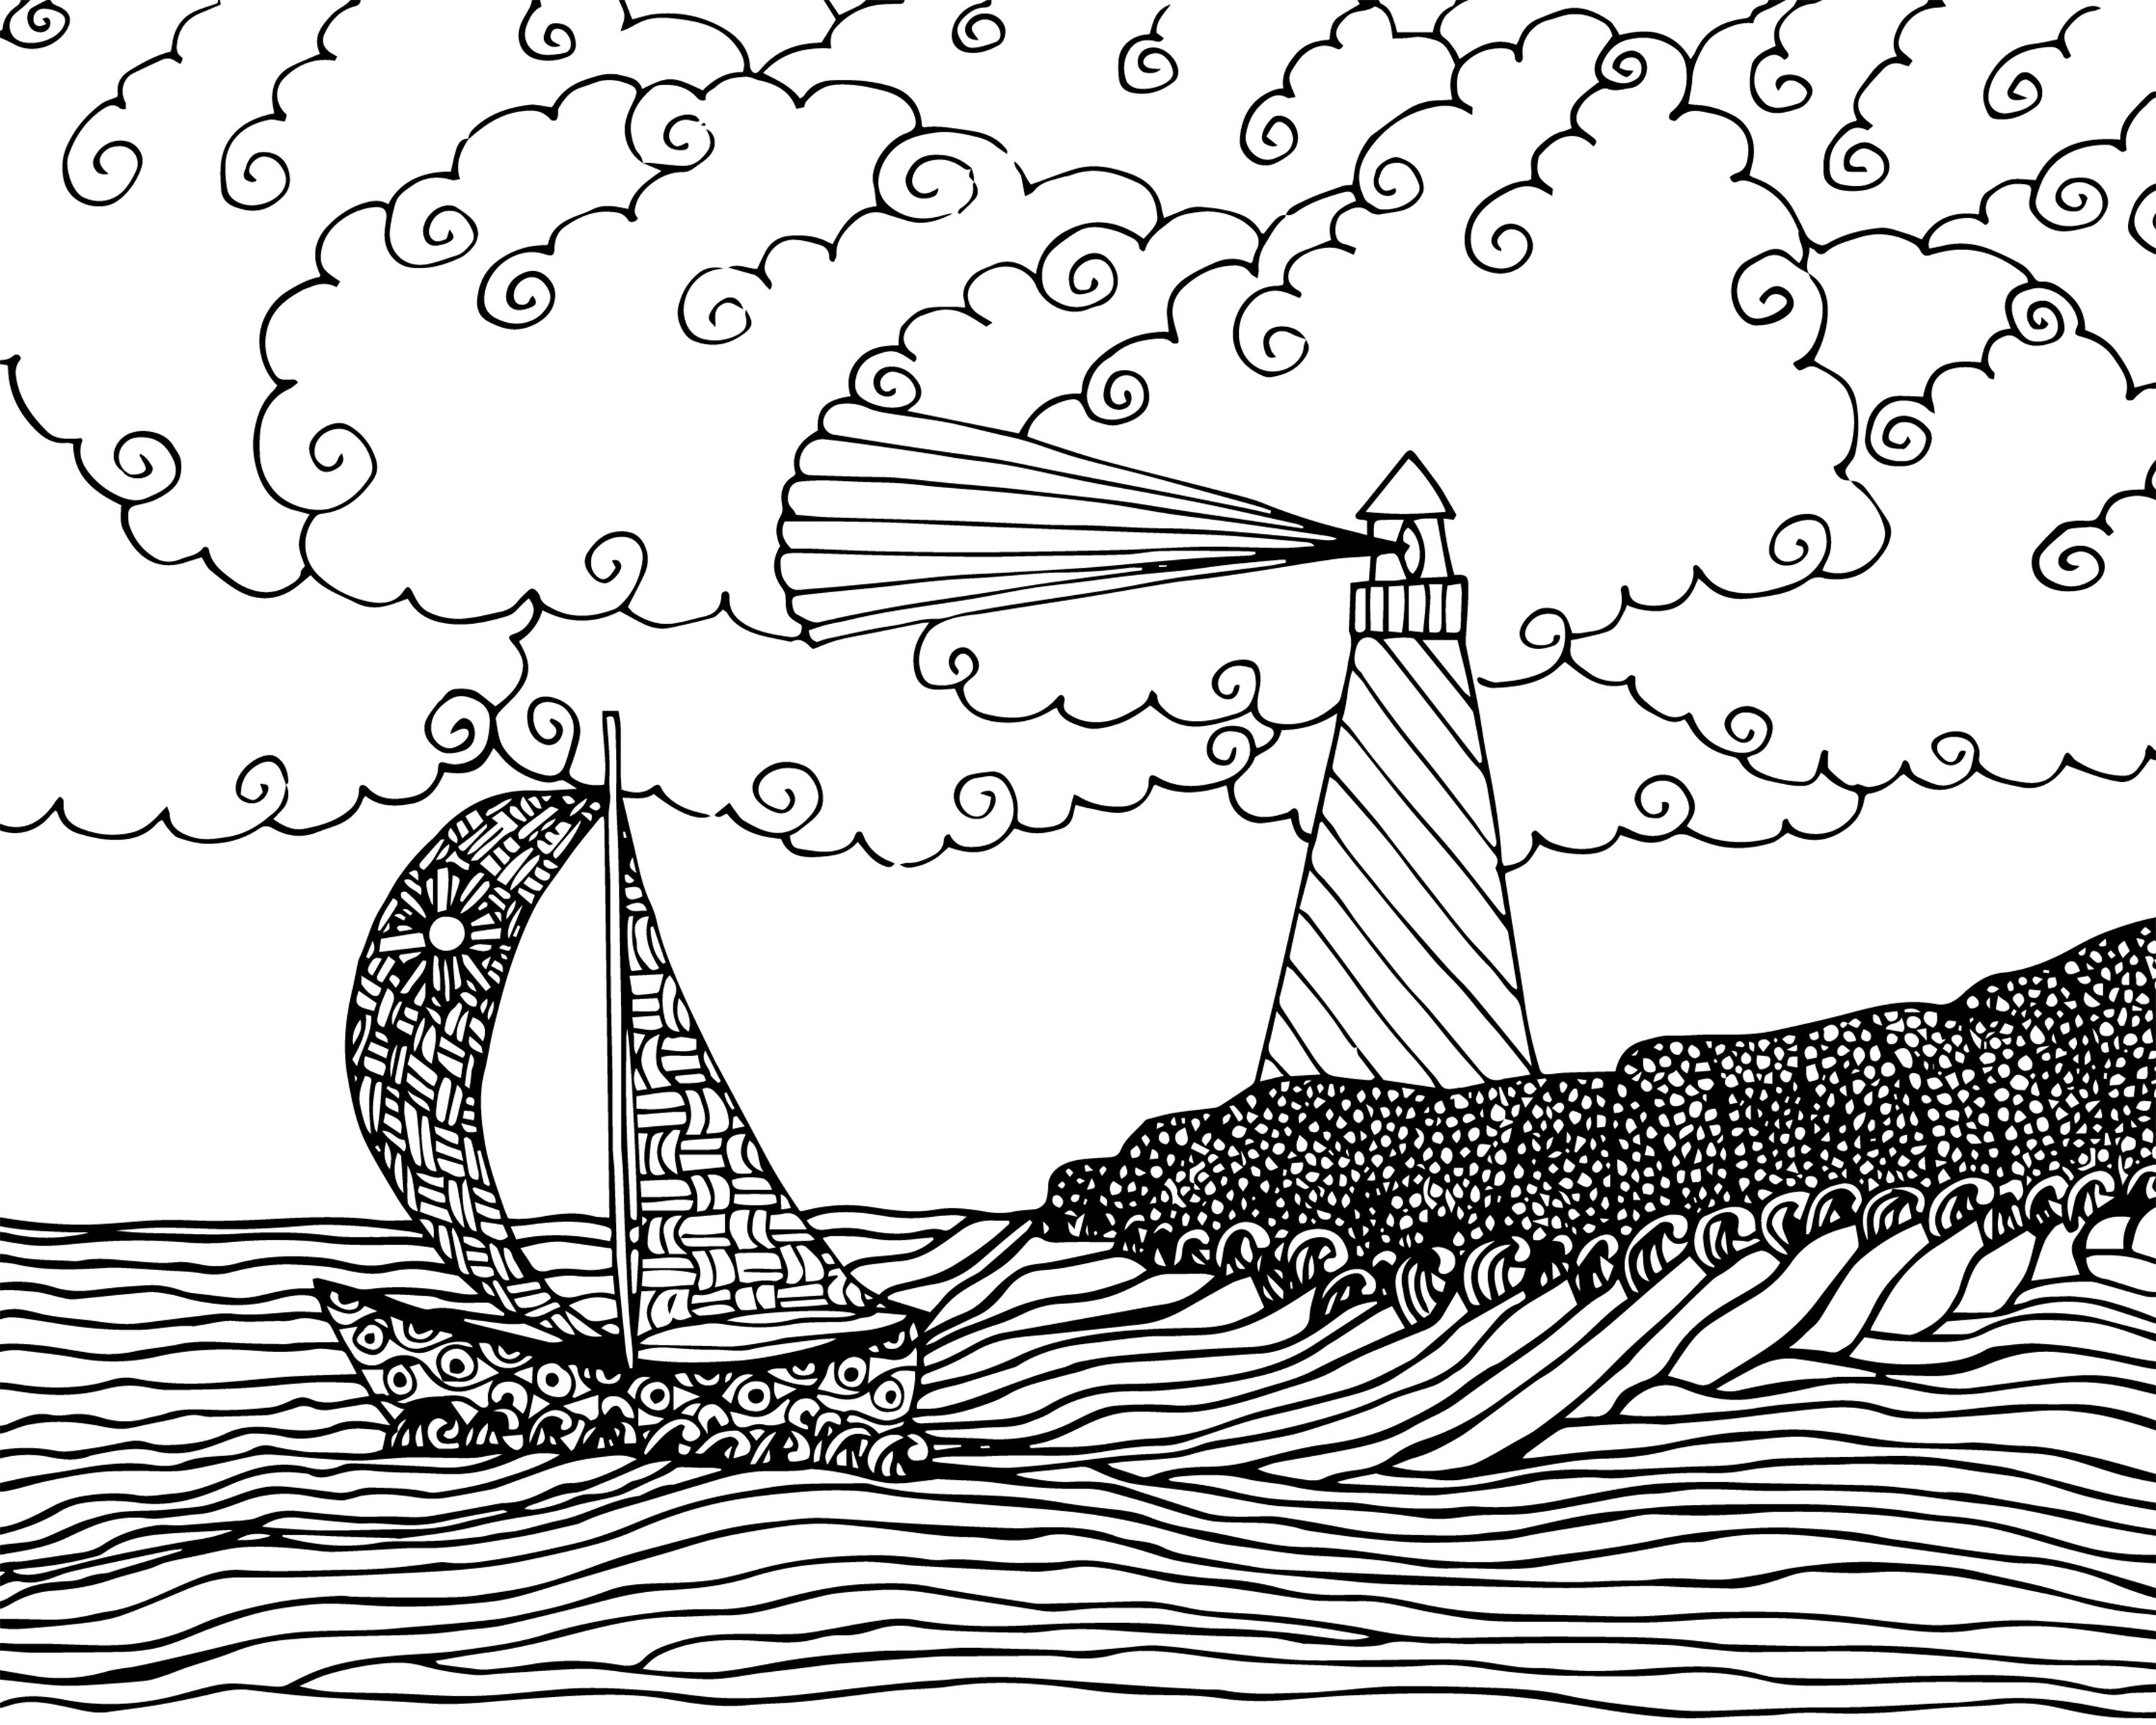 FREE seascape coloring page for adults FREE Printable